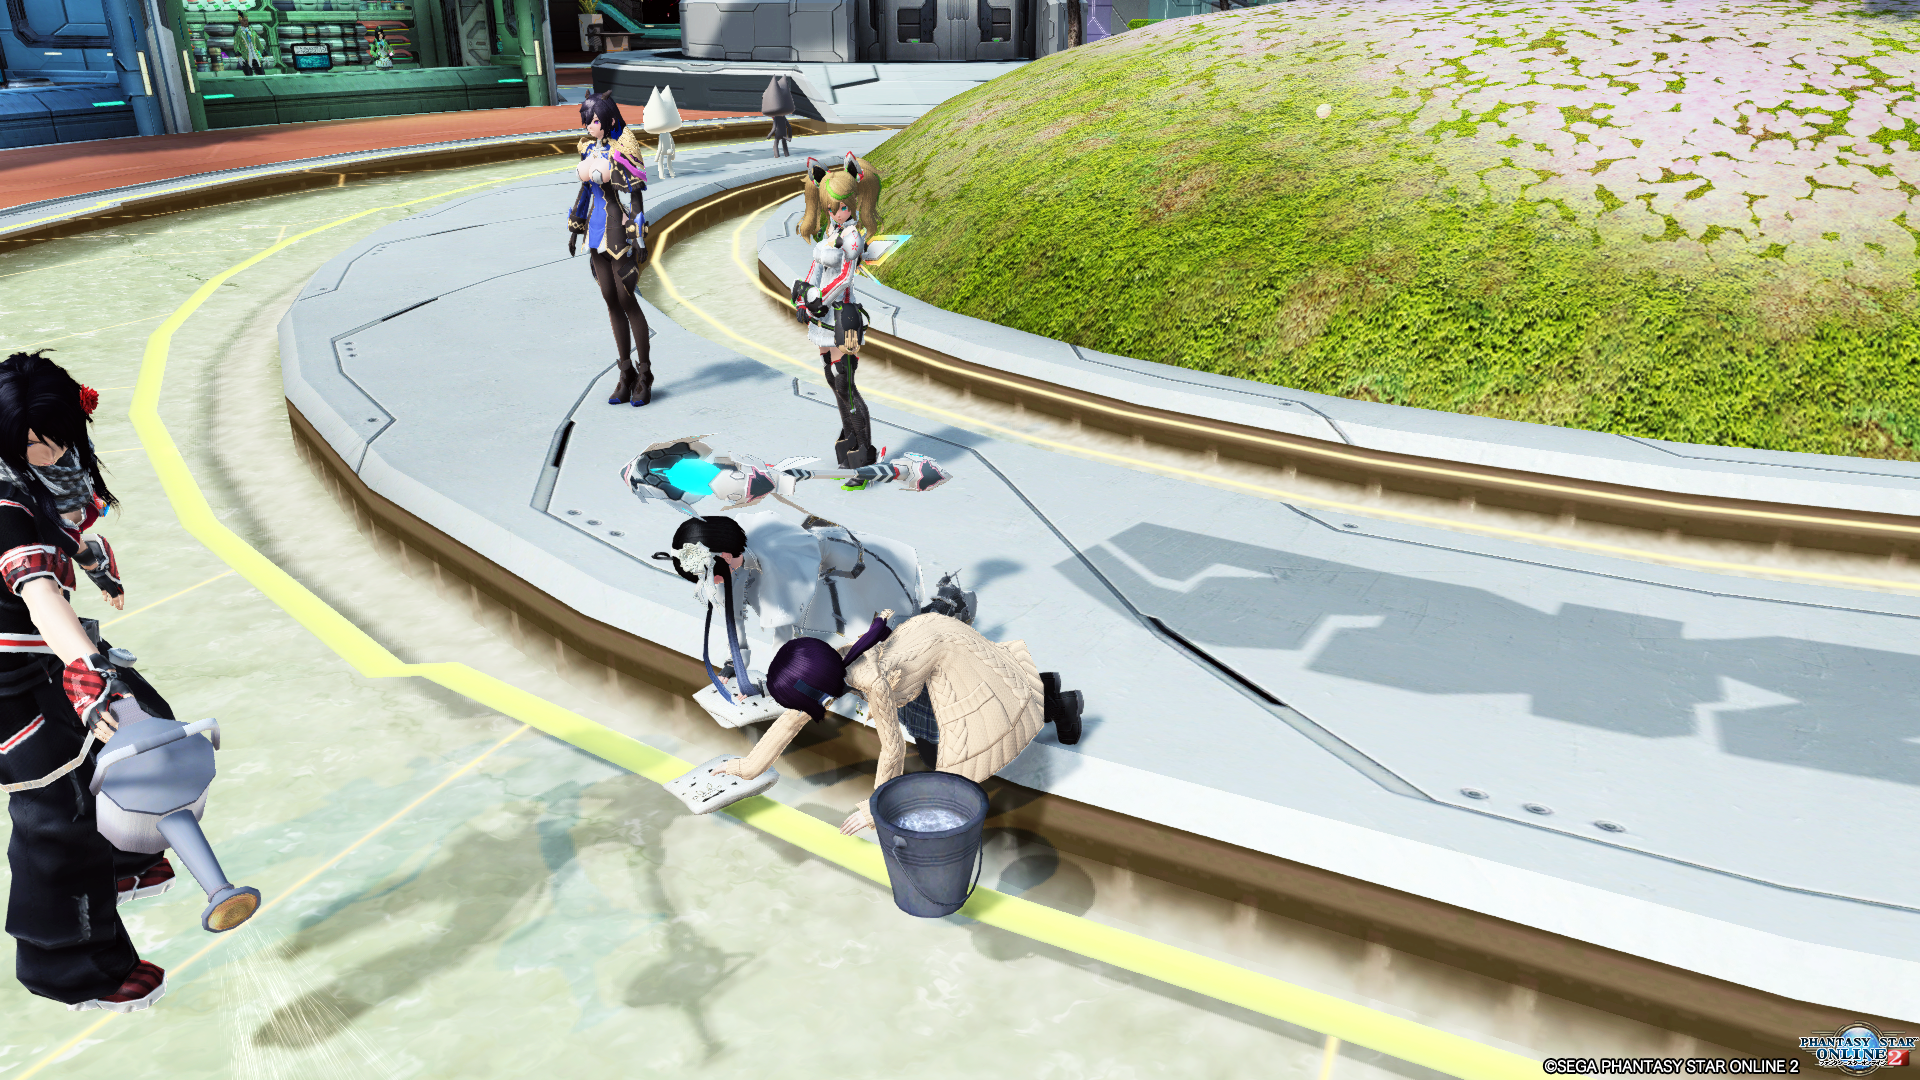 pso20200423222820.png